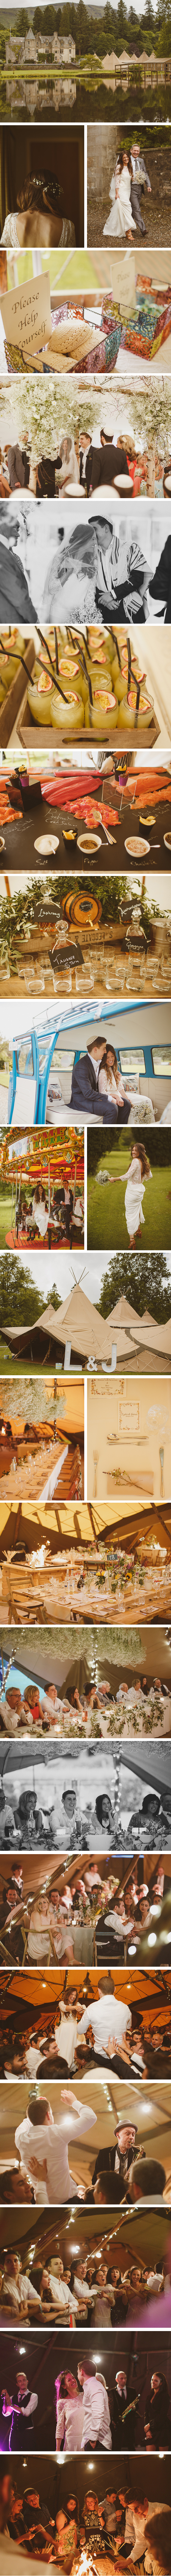 Lydia & James PapaKata Teepee Wedding at Duntreath Castle, Scotland